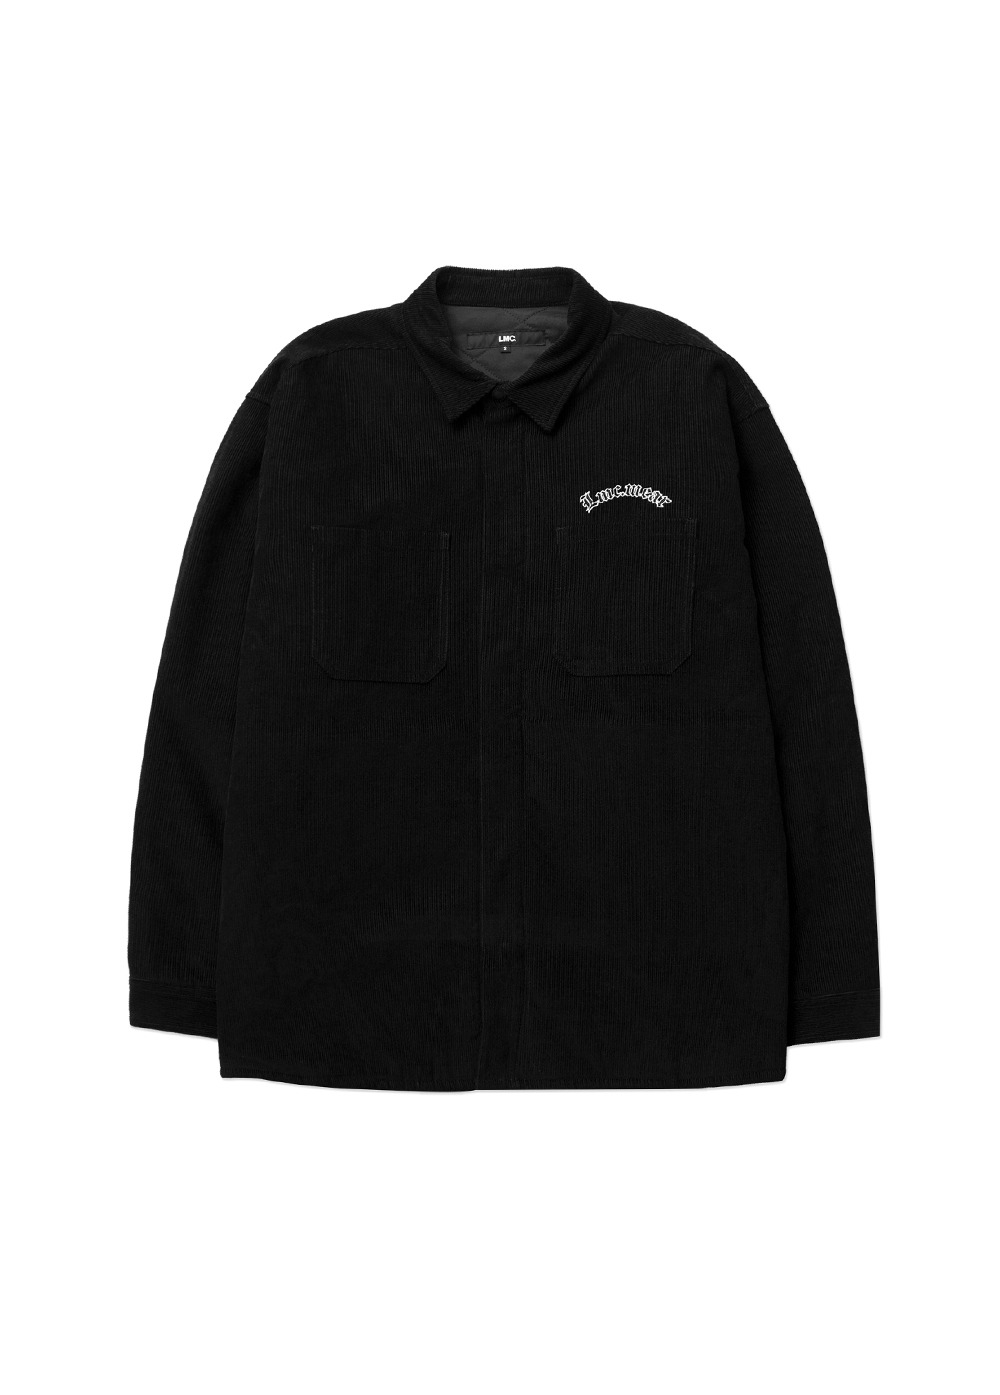 LMC CORDUROY PADDED SHIRTS JACKET black